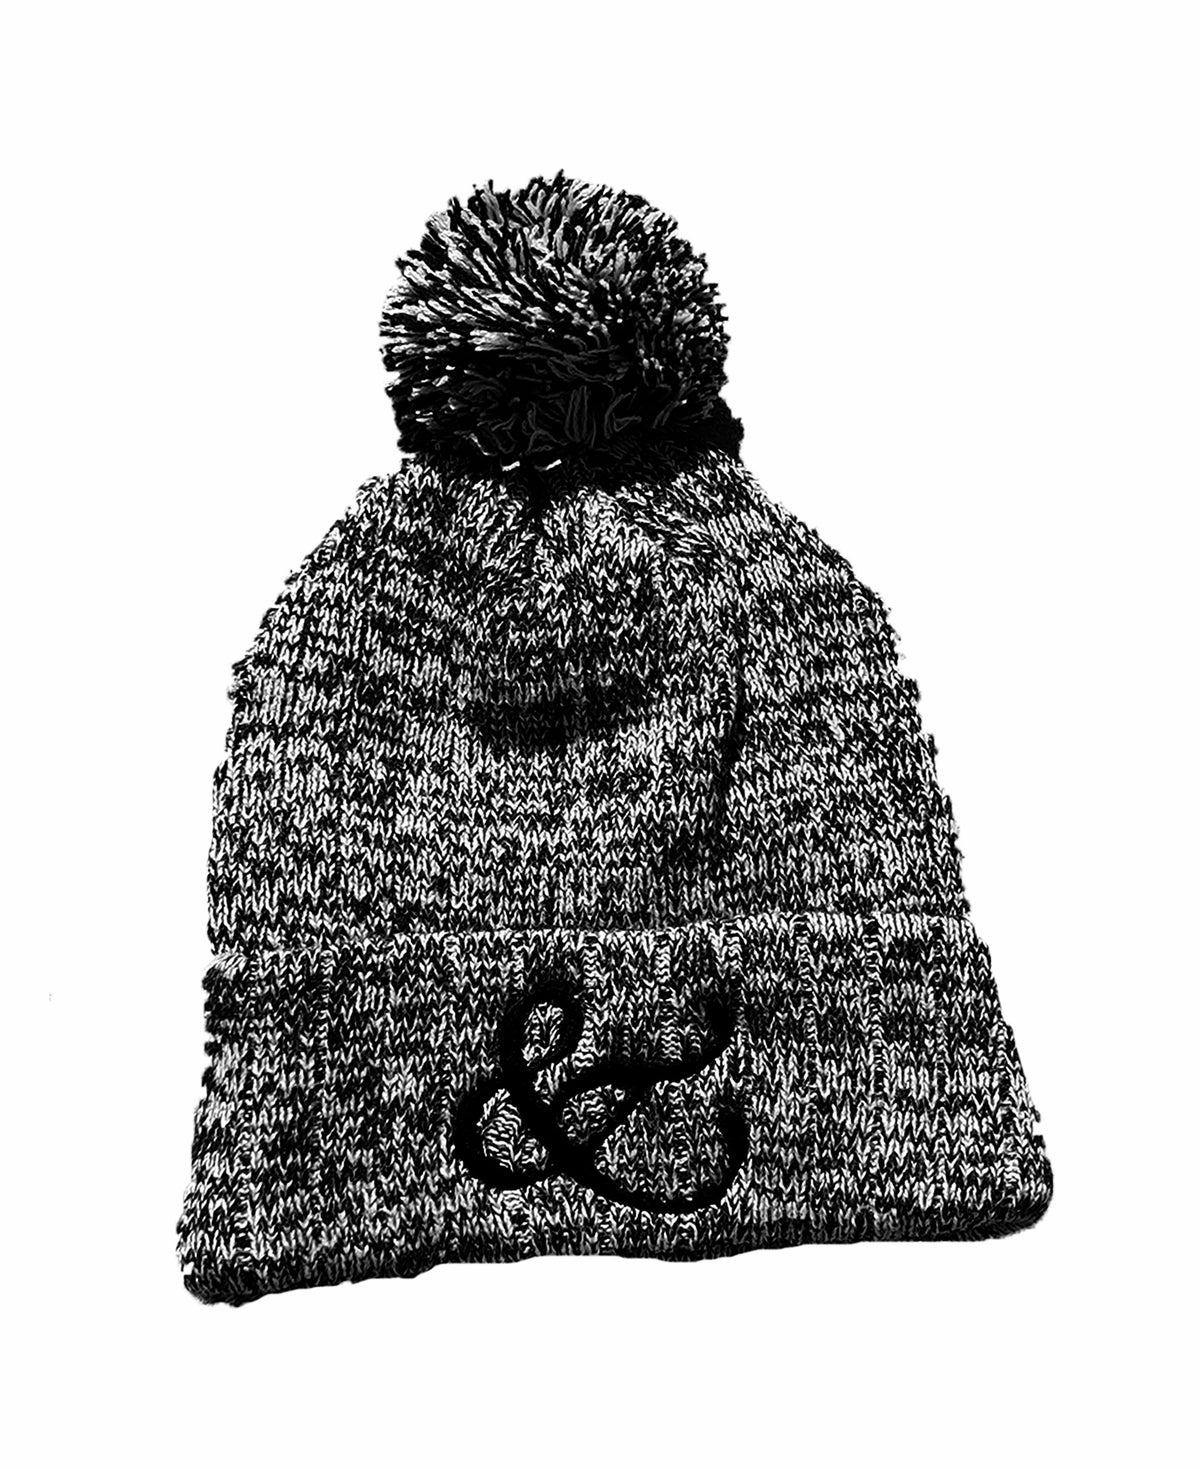 Image of Ampersand Beanie